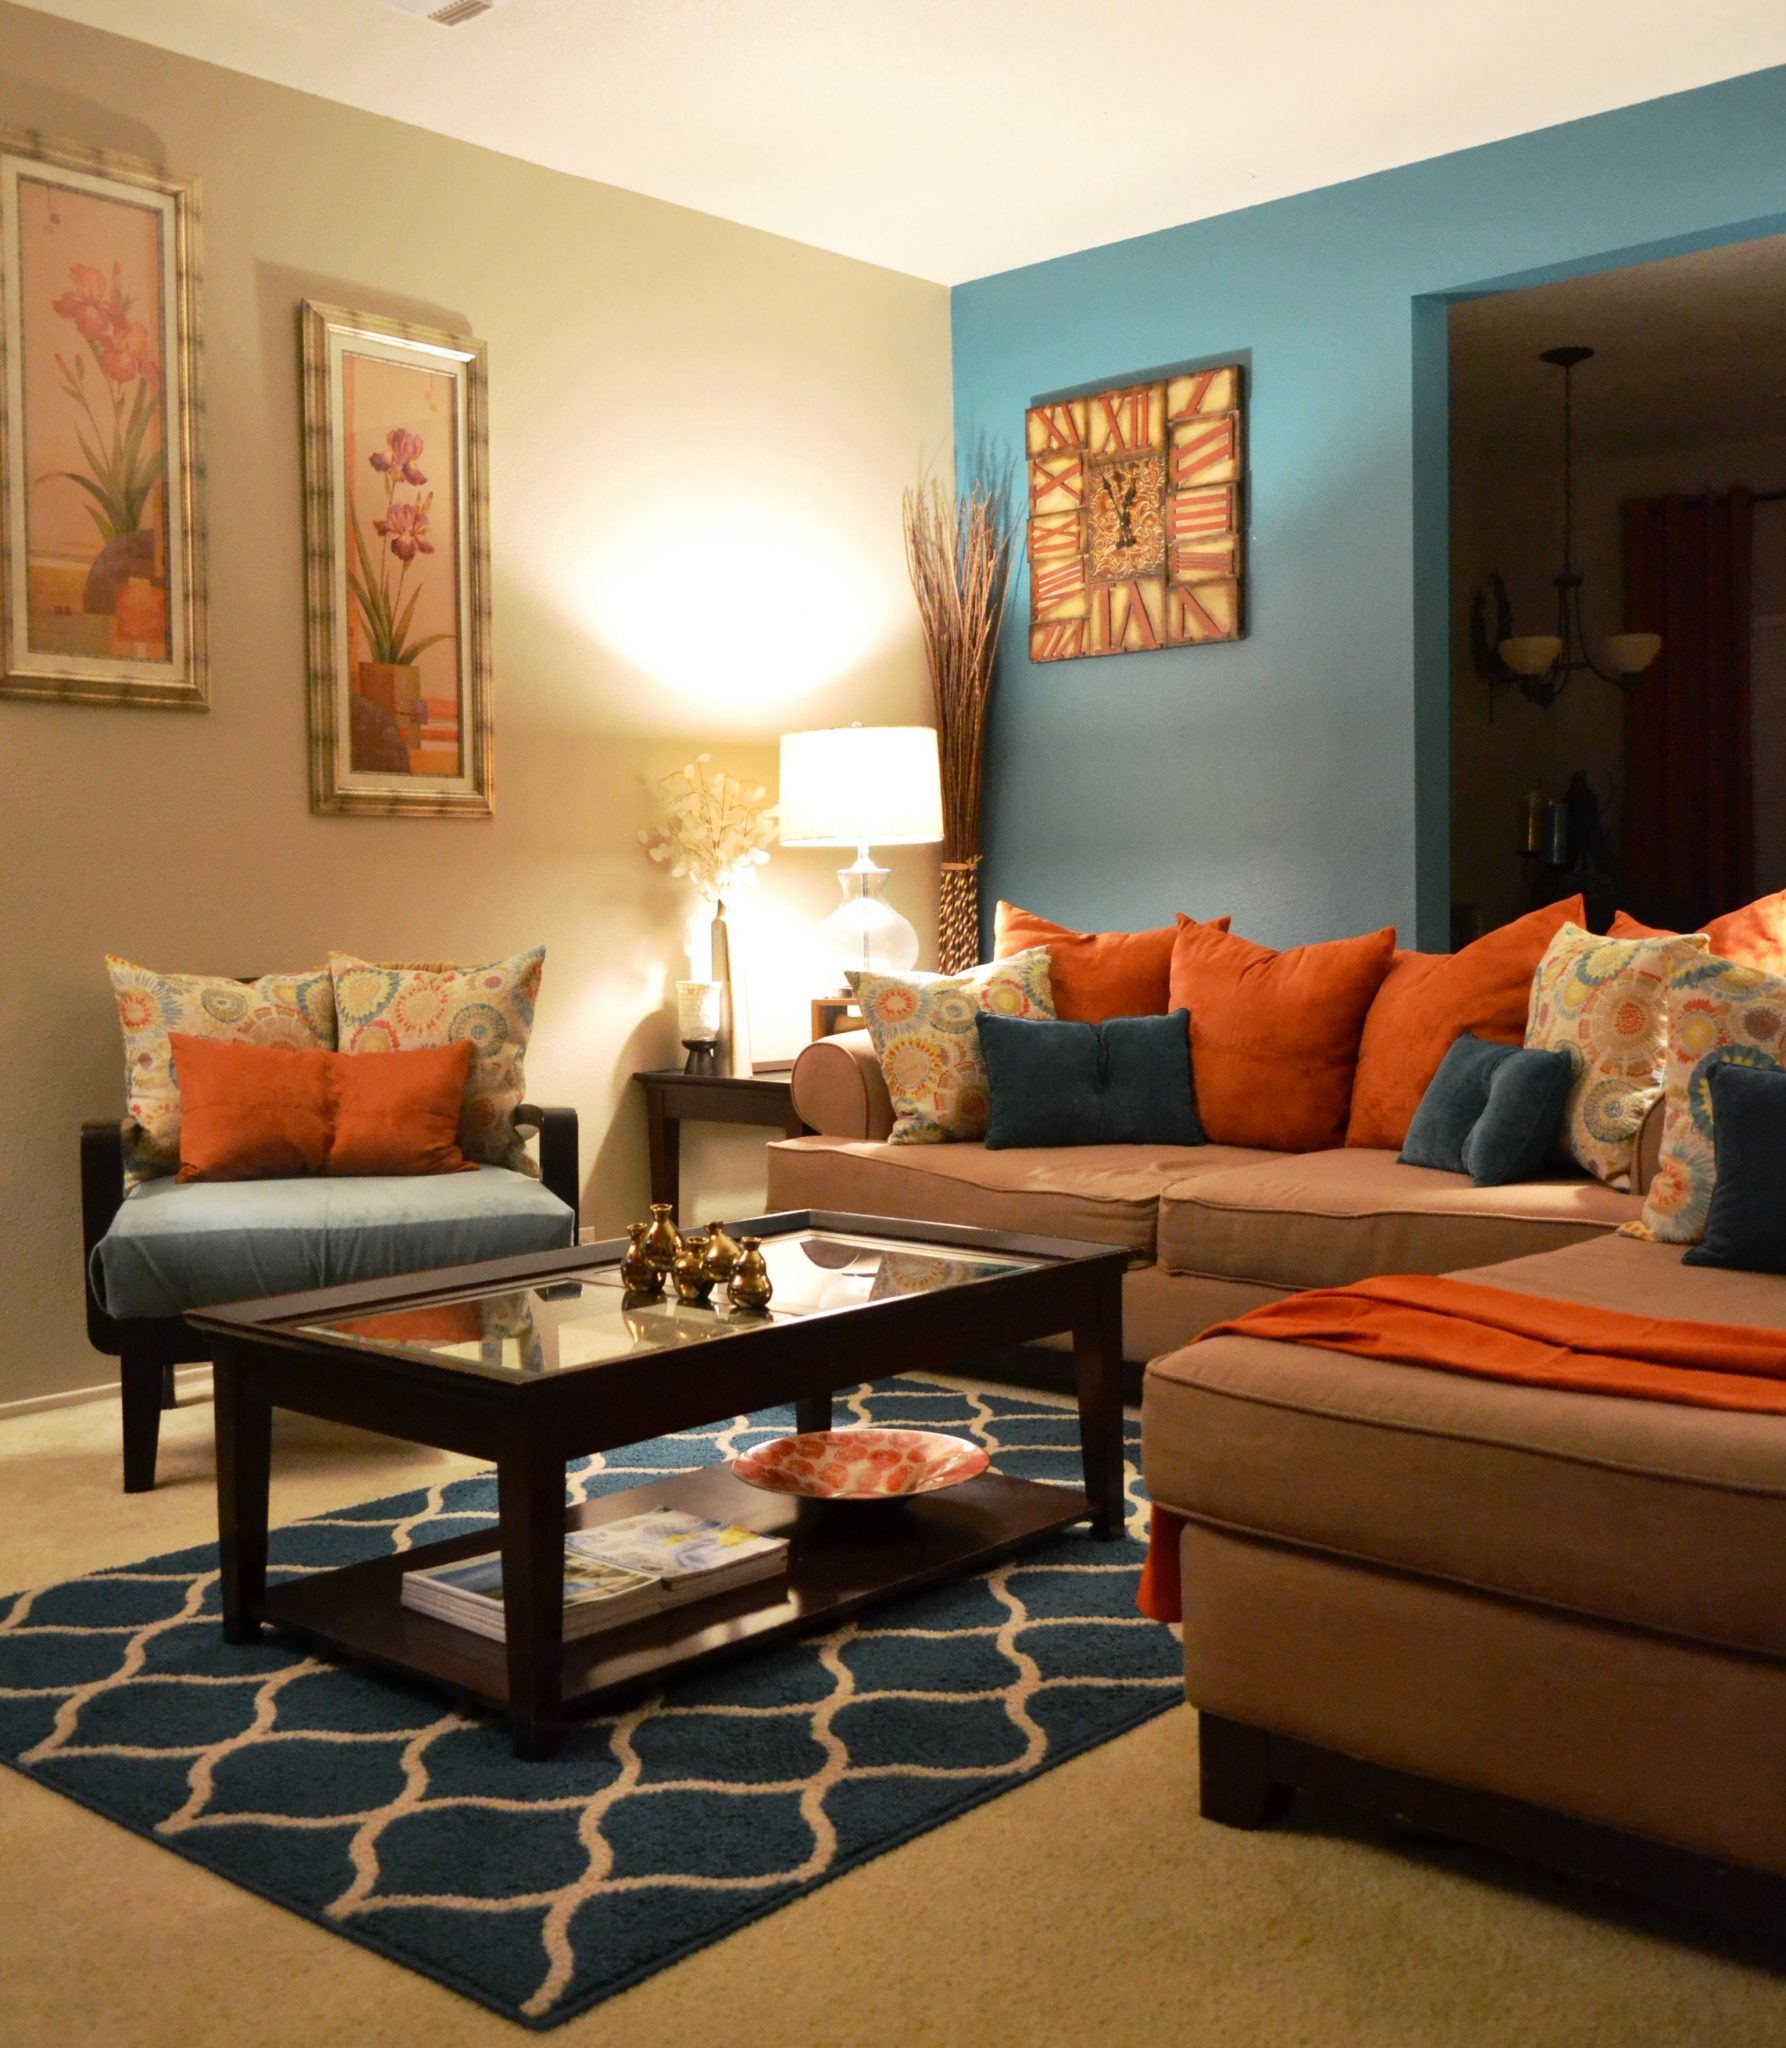 Lively living room in teal and brown